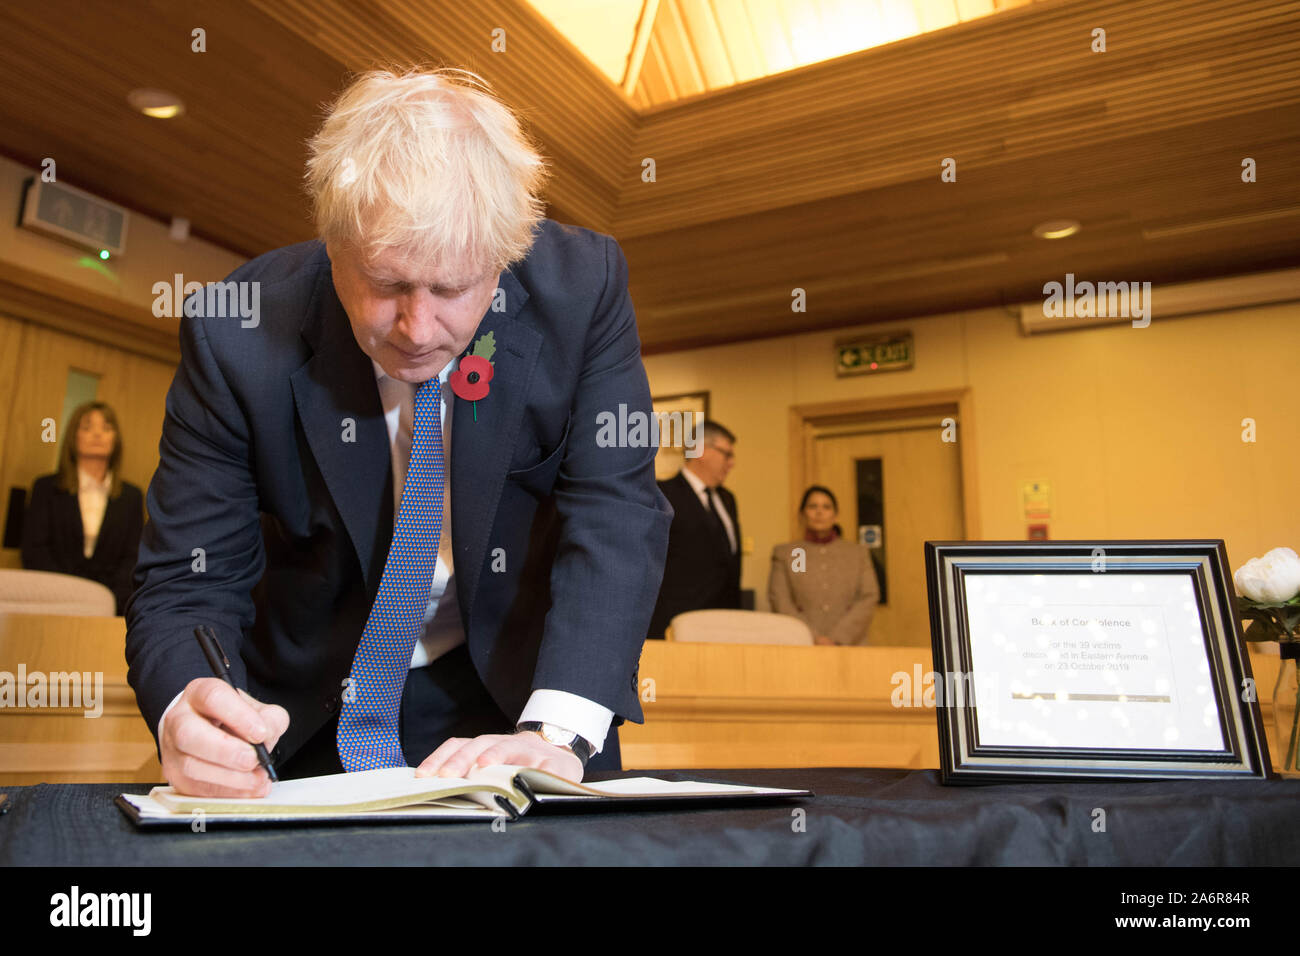 Prime Minister Boris Johnson signs a book of condolence, during a visit to Thurrock Council Offices in Essex after the bodies of 39 people were found in a lorry container last week. Stock Photo